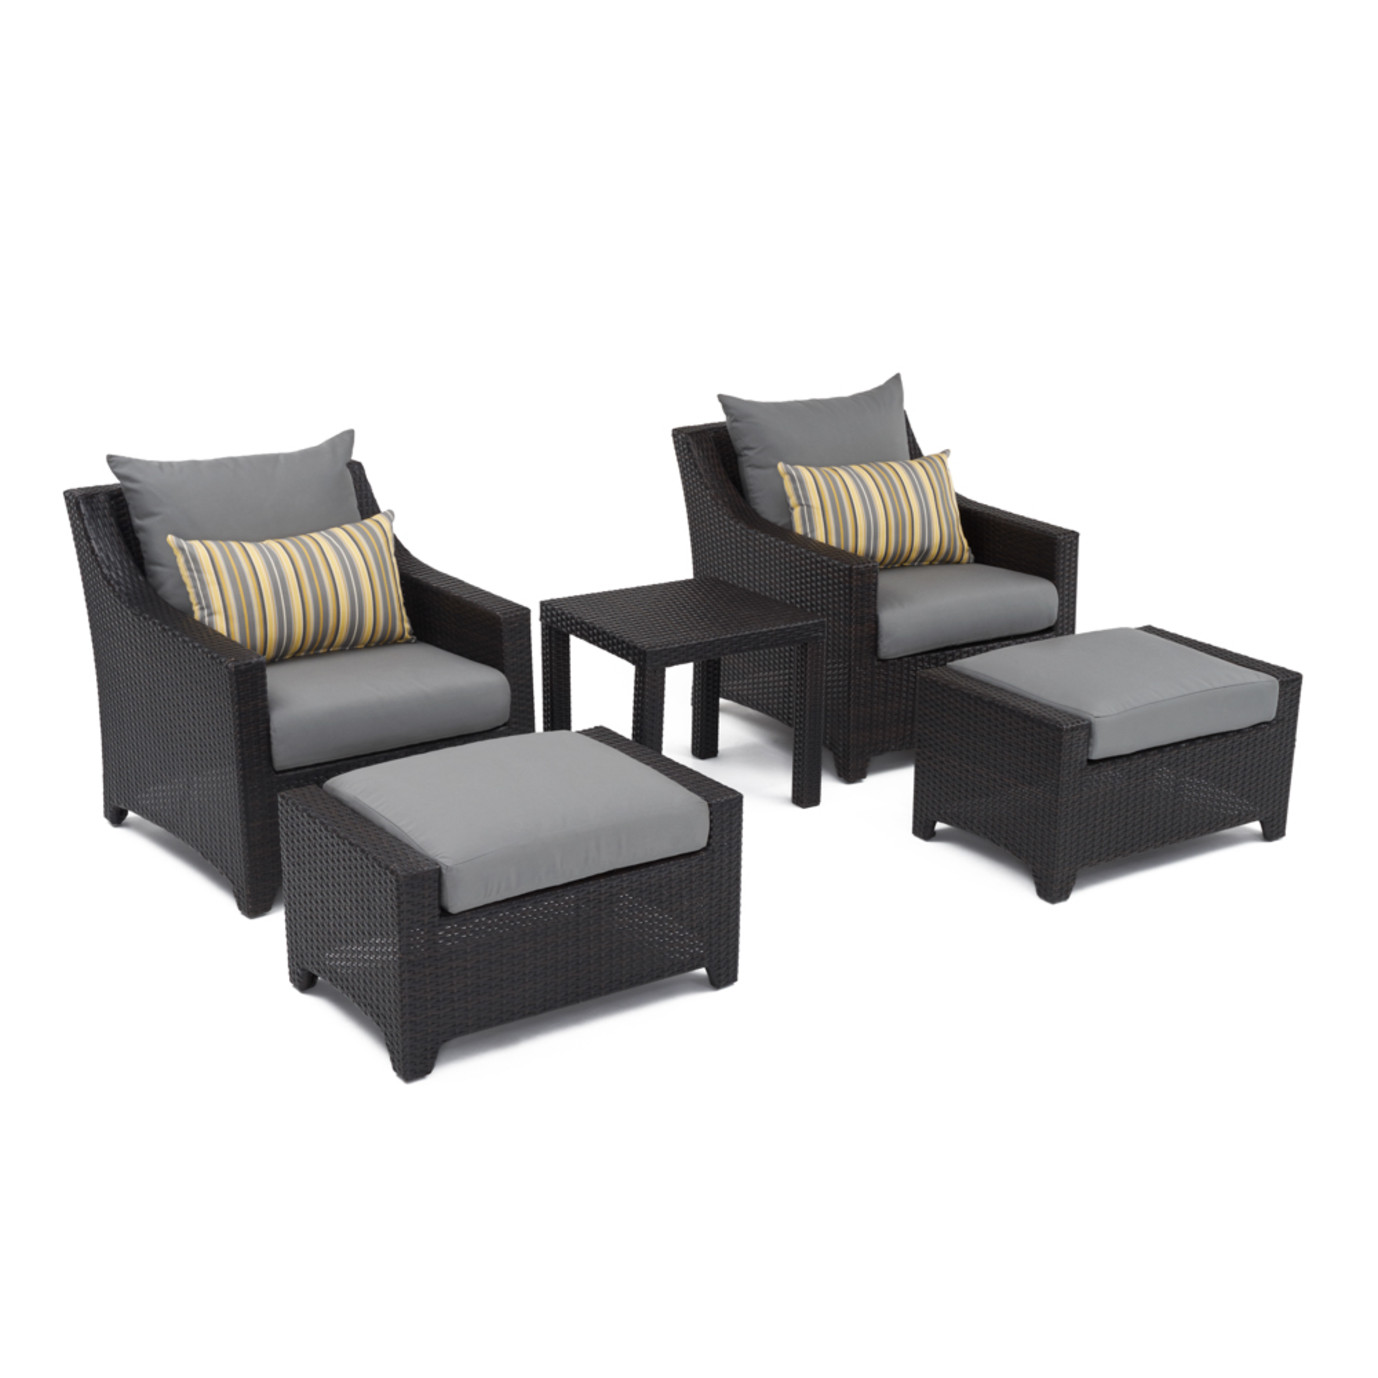 Deco™ 20pc Outdoor Estate Set - Charcoal Grey